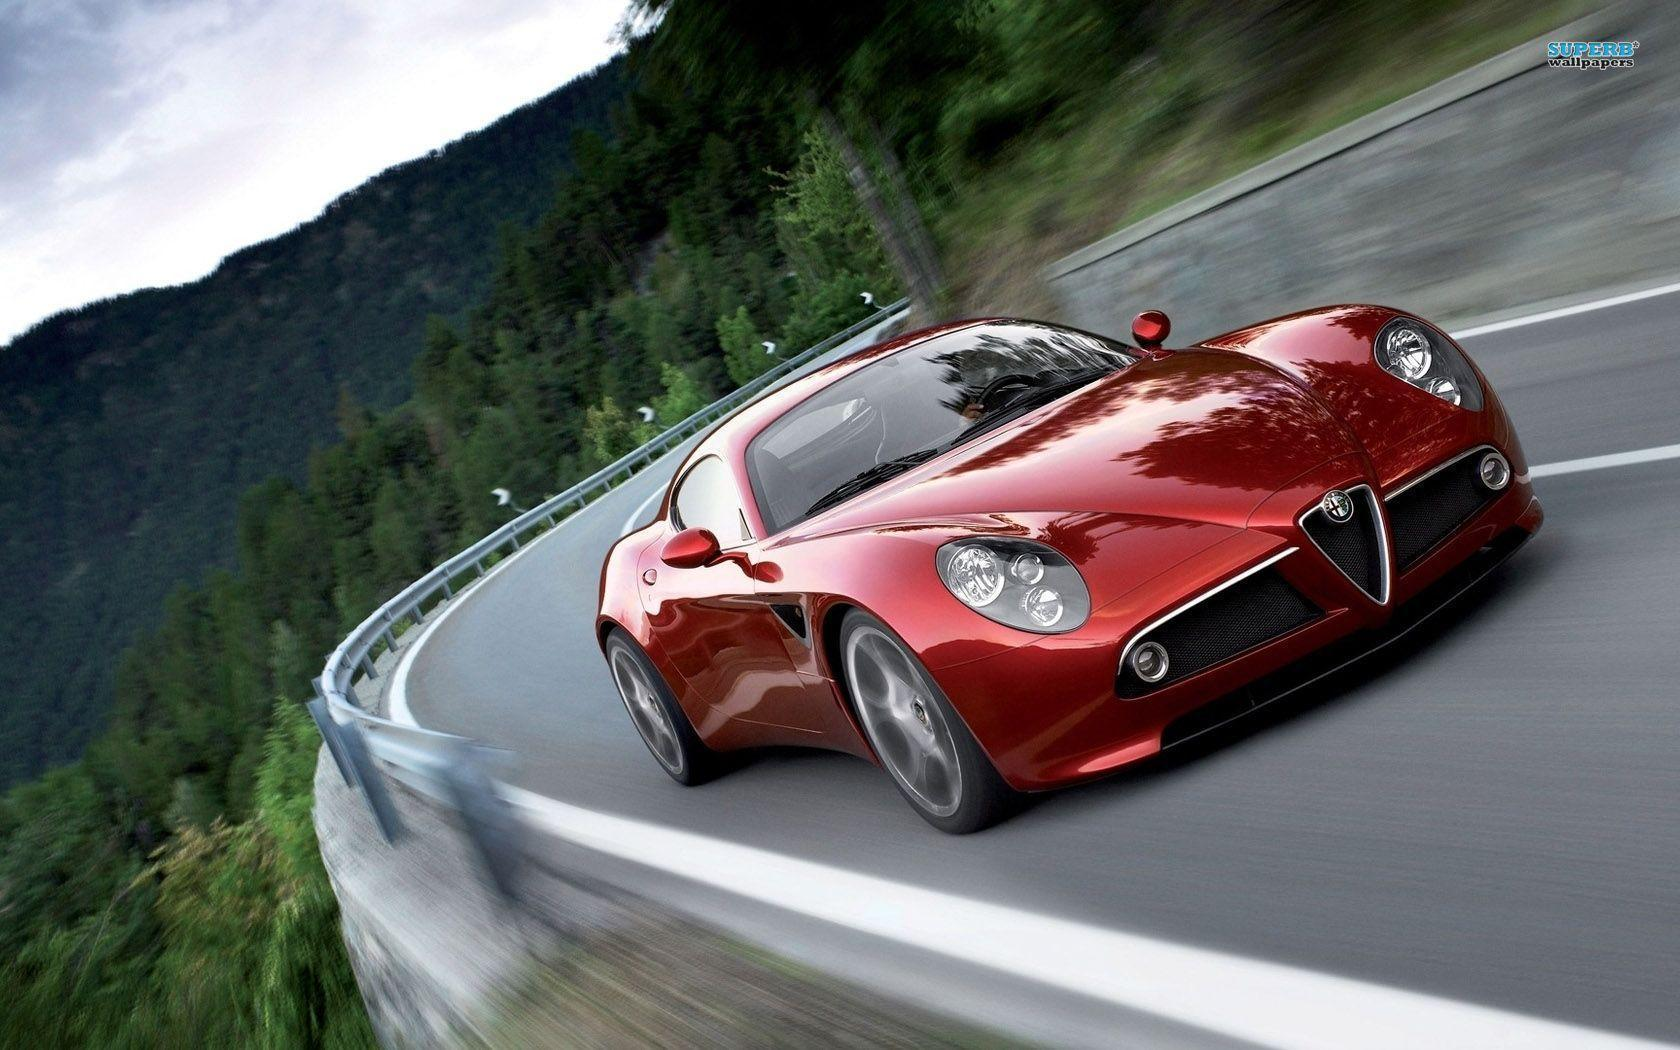 Sports Cars 2013 Wallpaper Hd Pictures 5 HD Wallpapers | lzamgs.